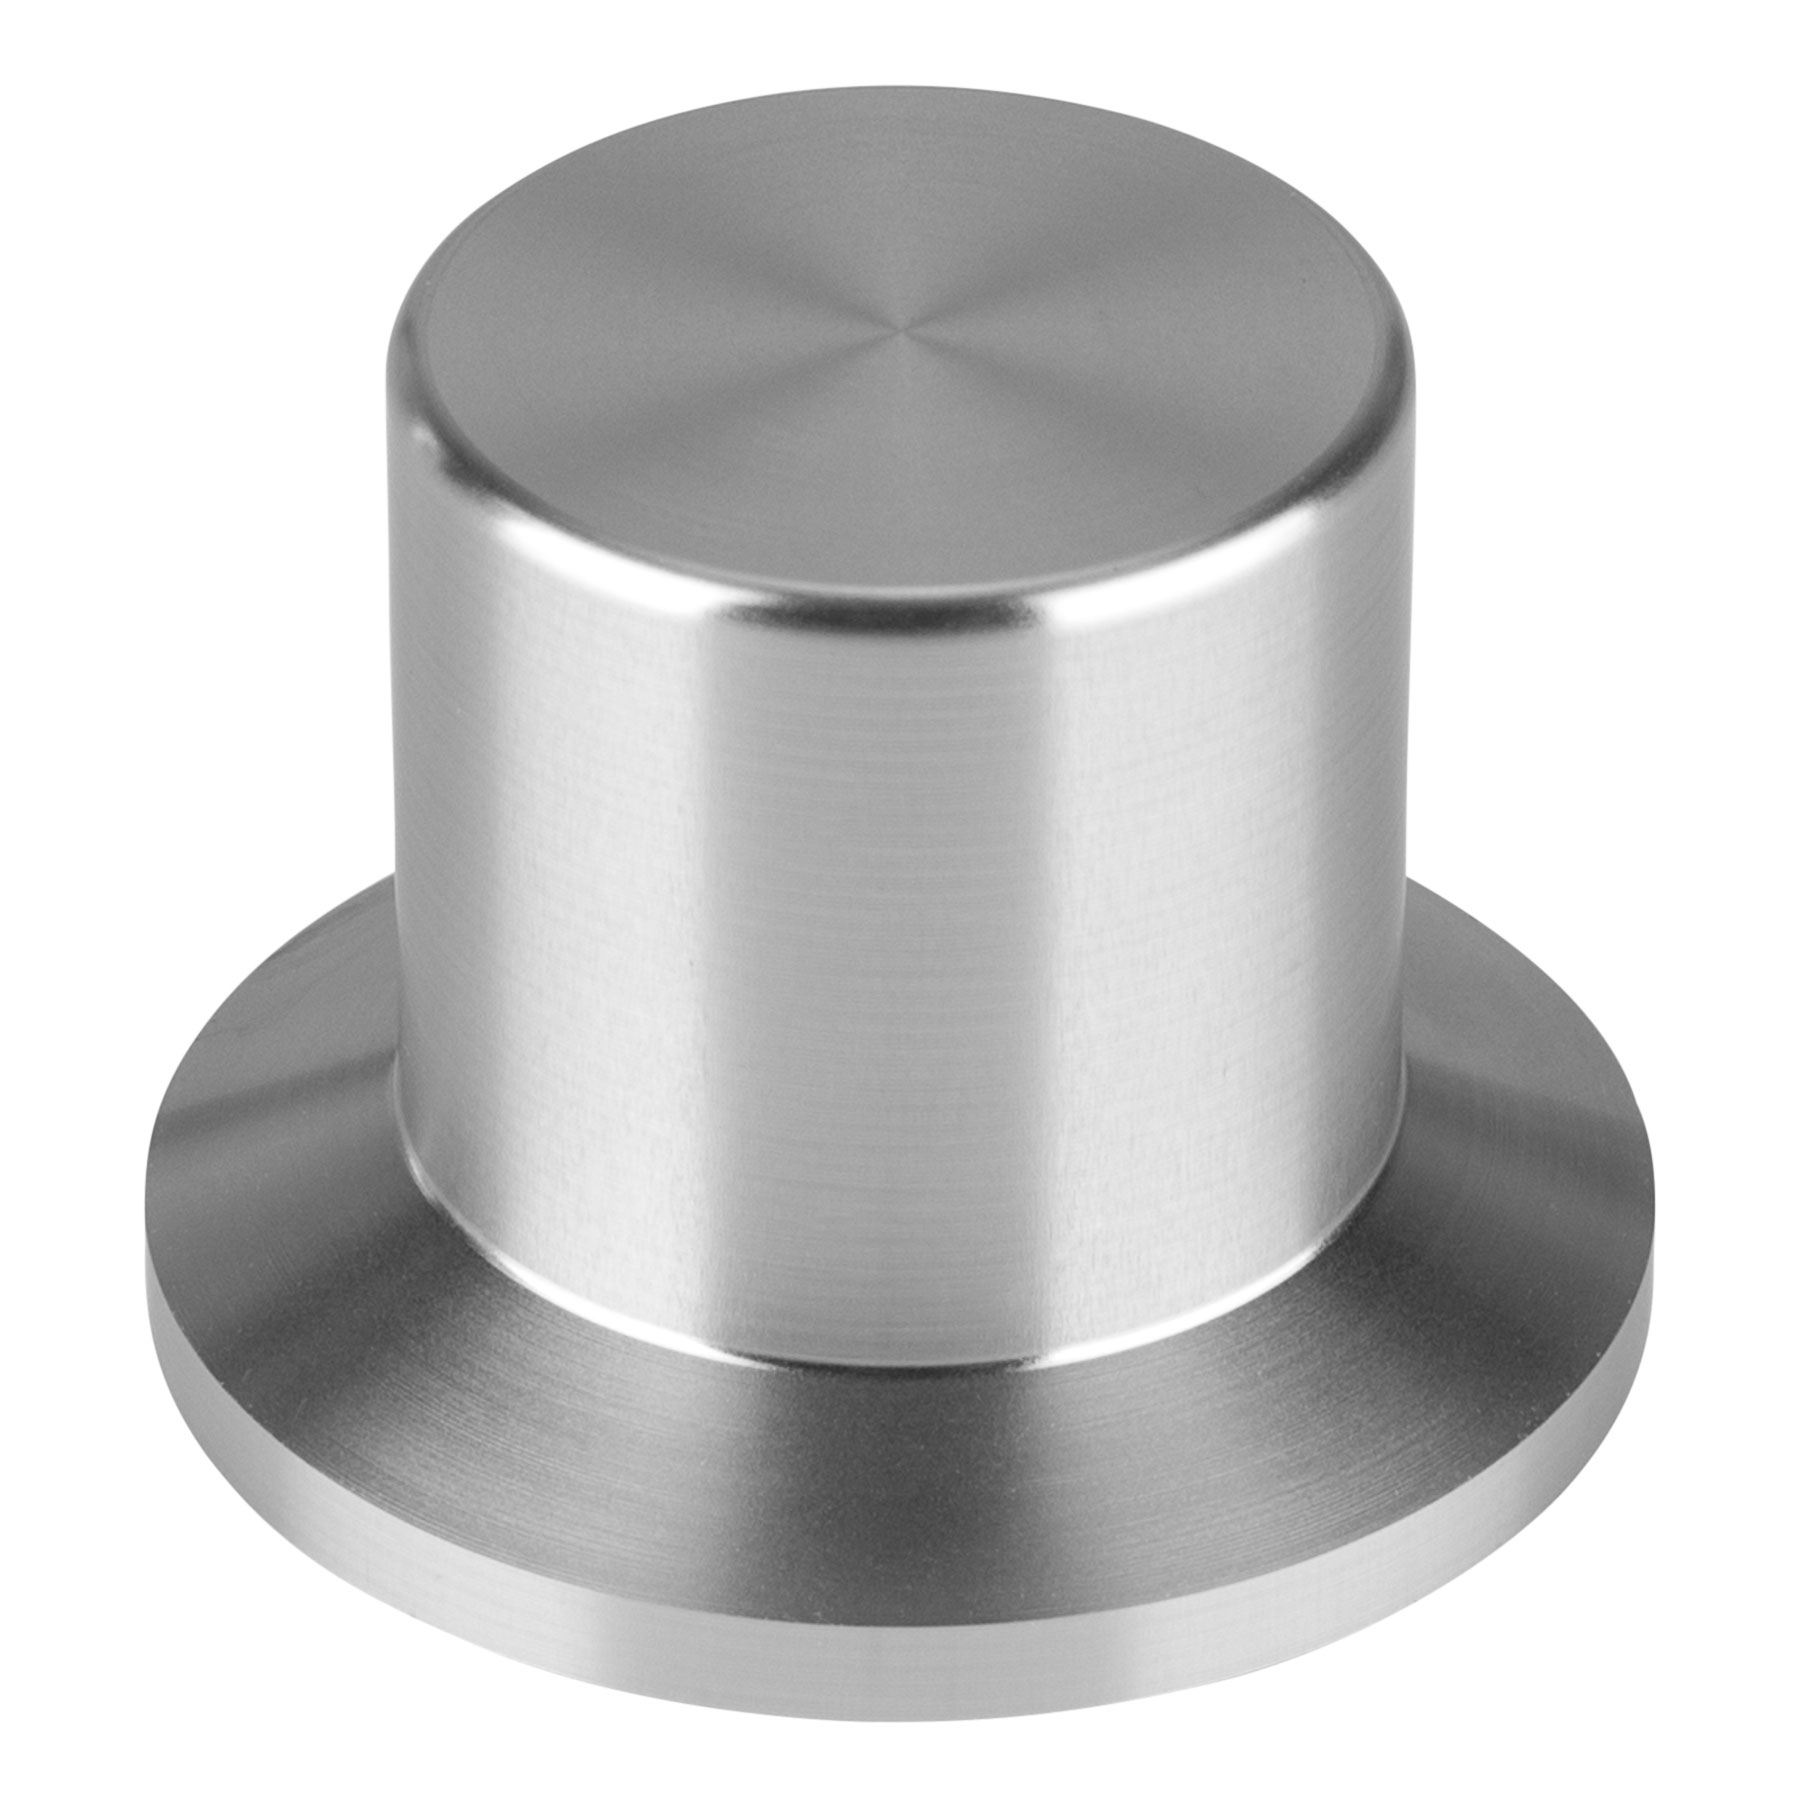 knob with base